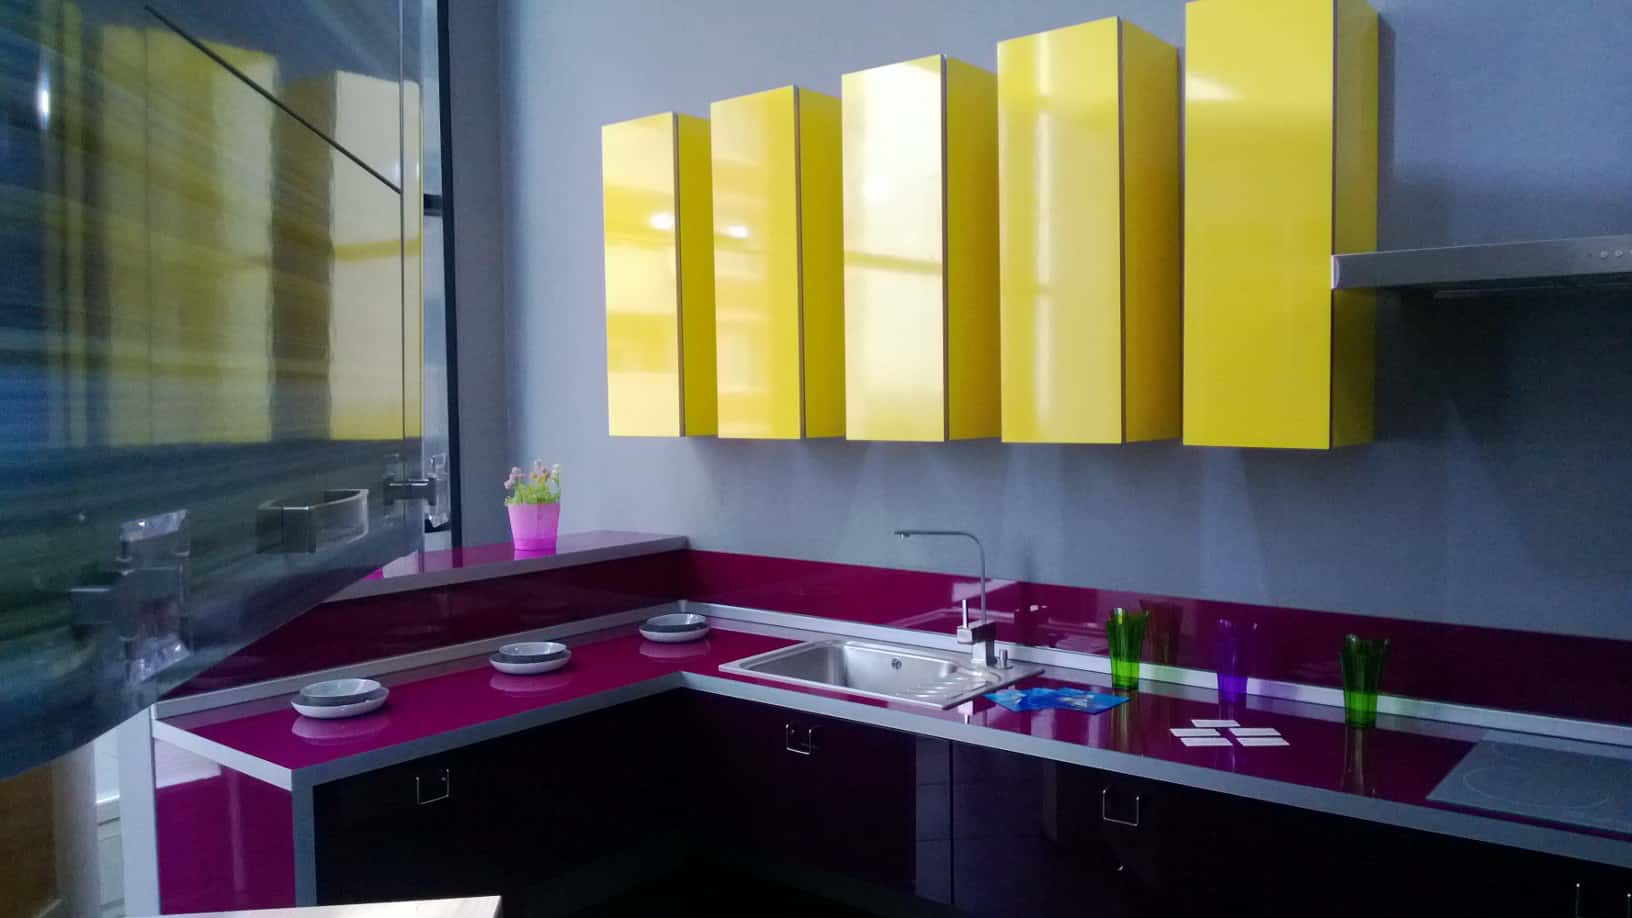 Trend Desain 2017 Interior Design Trends 2017 Purple Kitchen House Interior